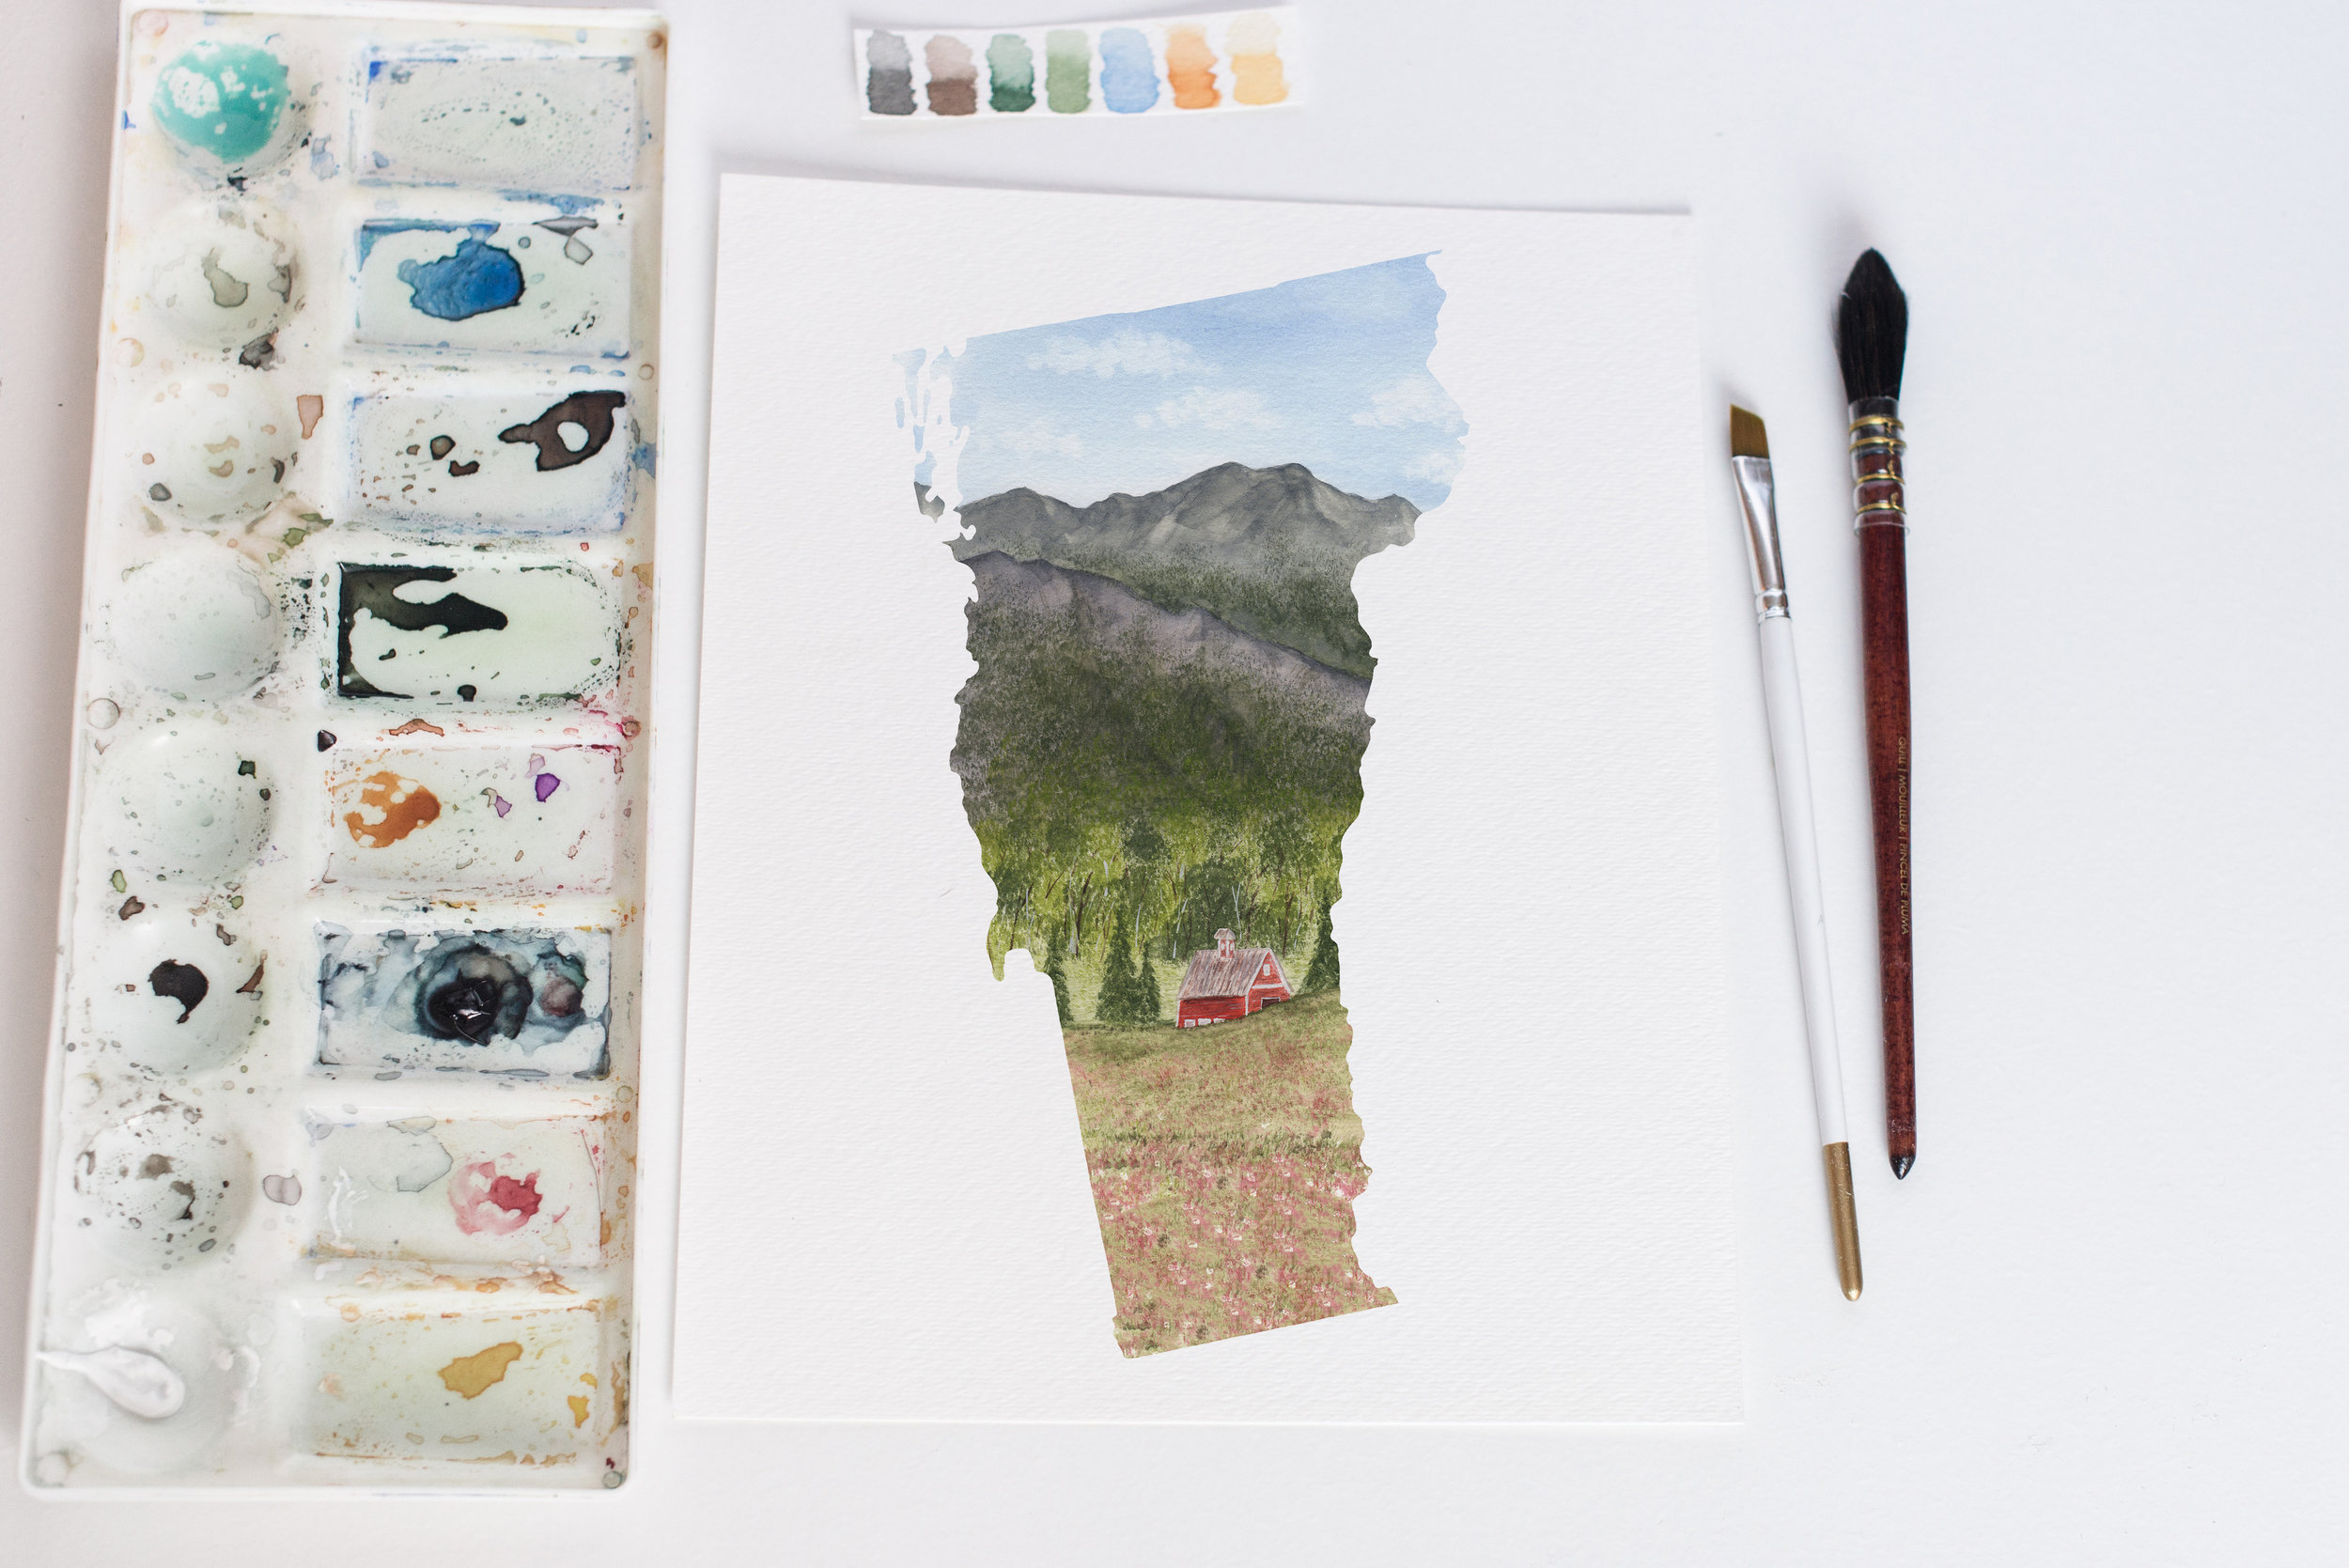 This one was interesting getting the perspective right. The close up florals and the woods fading up the tall mountain.